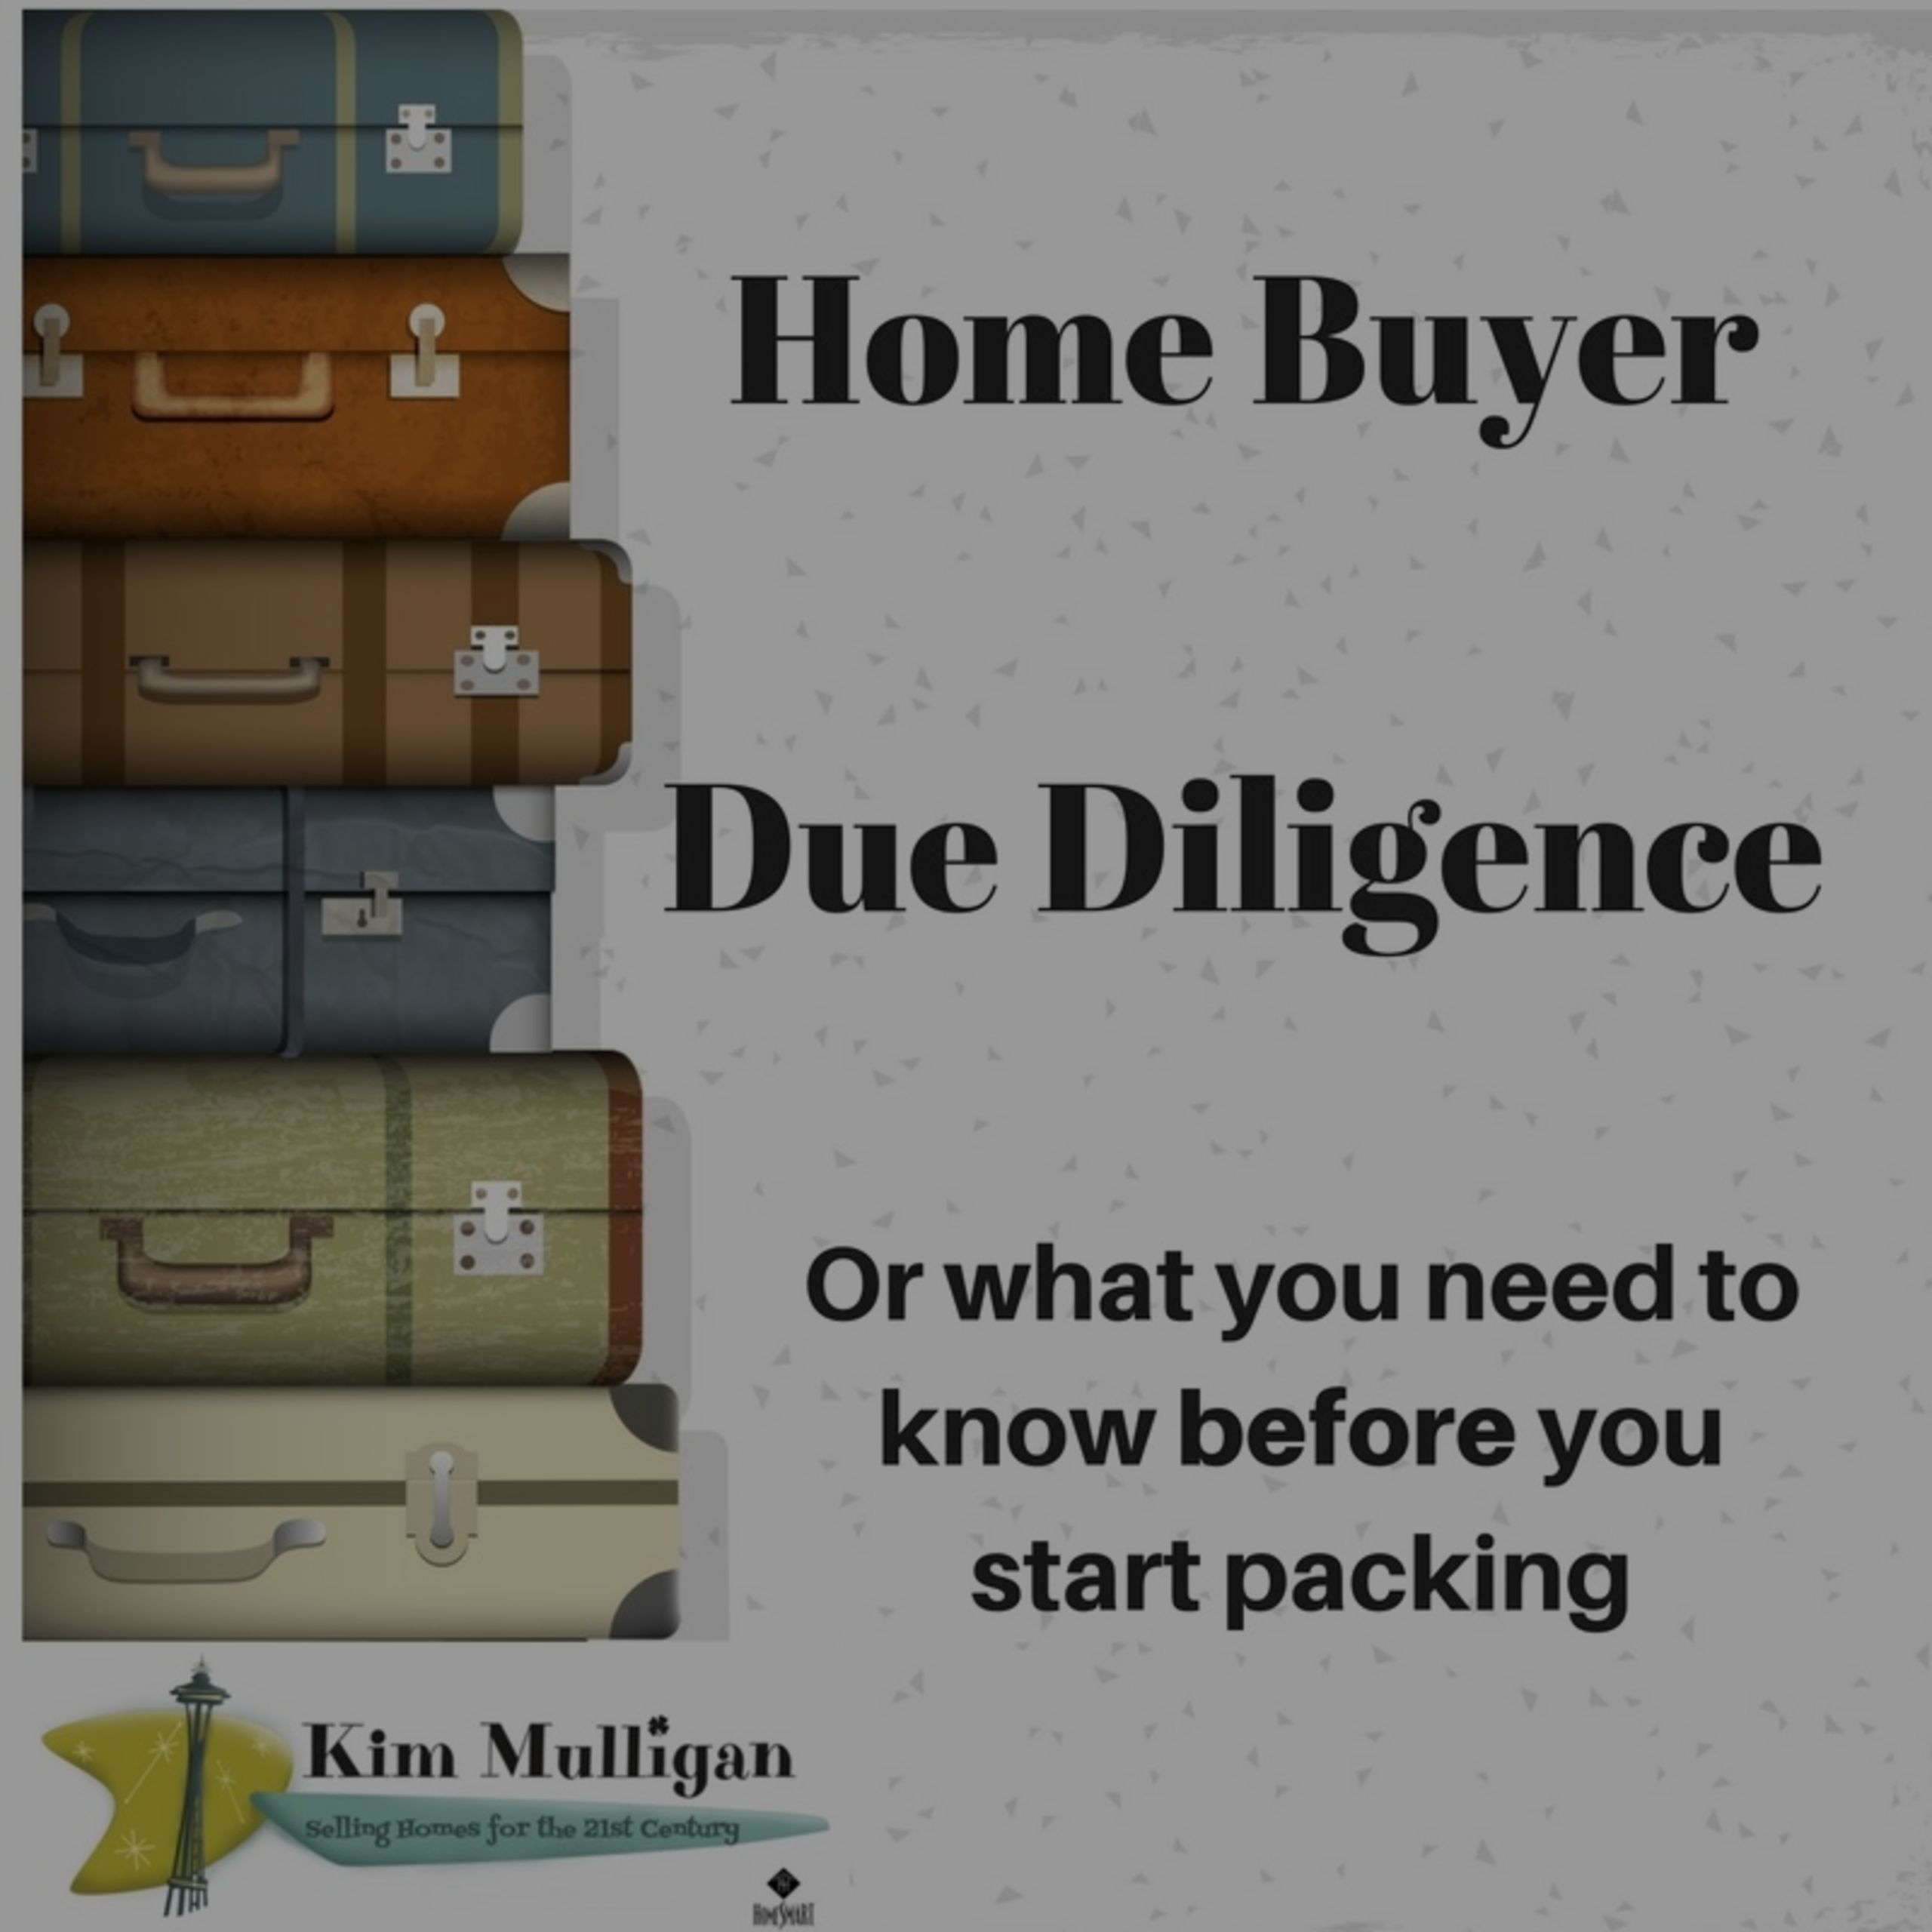 Home Buyer's Due Diligence